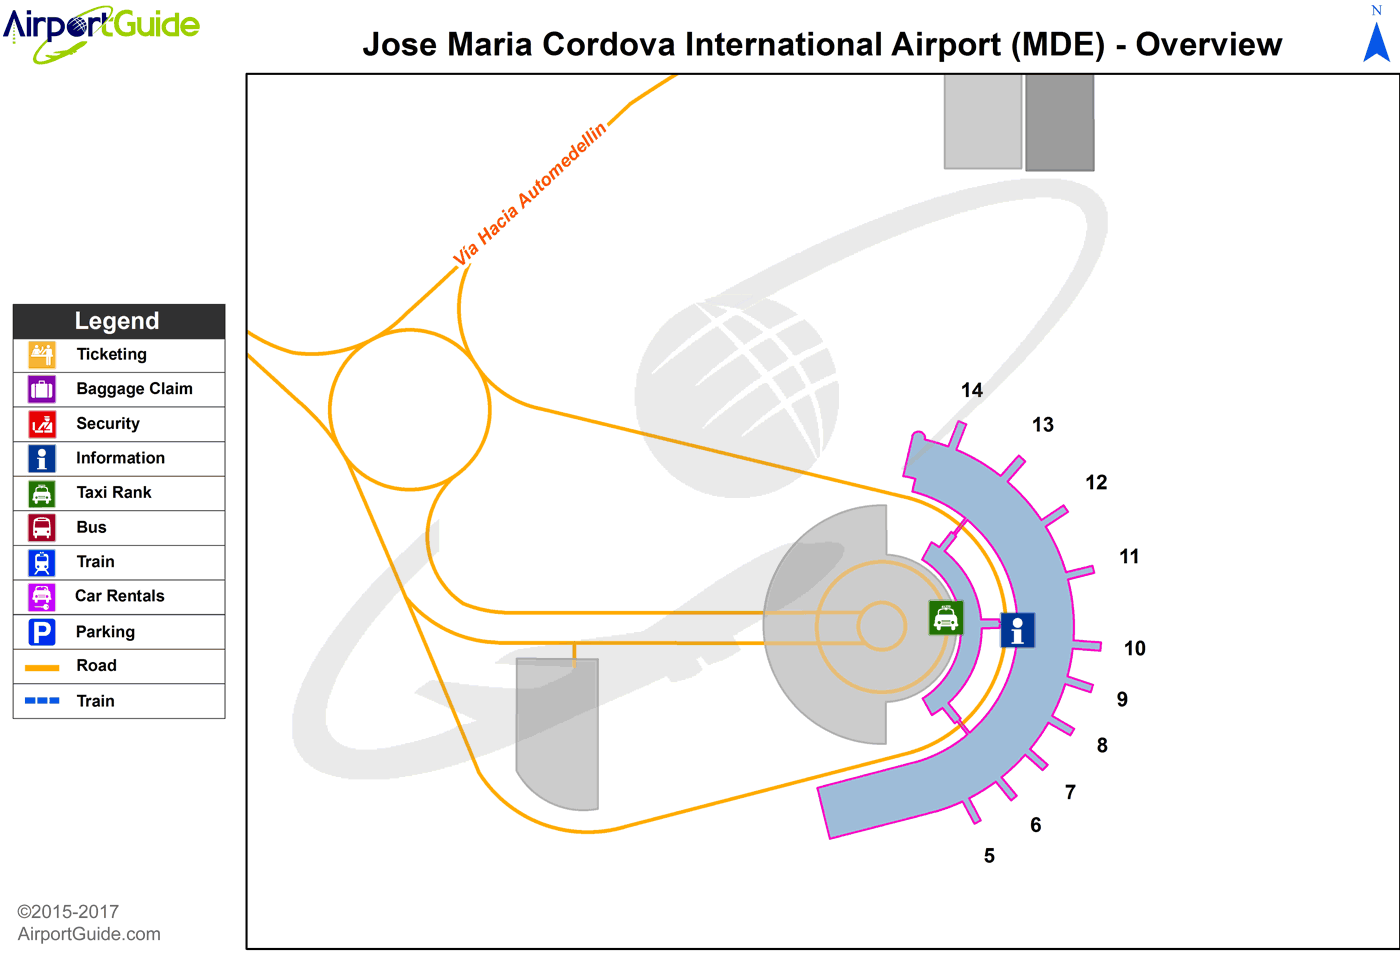 Rionegro Jose Maria Cordova International Airport Mde Airport Terminal Map Overview Airport Guide Map Airports Terminal